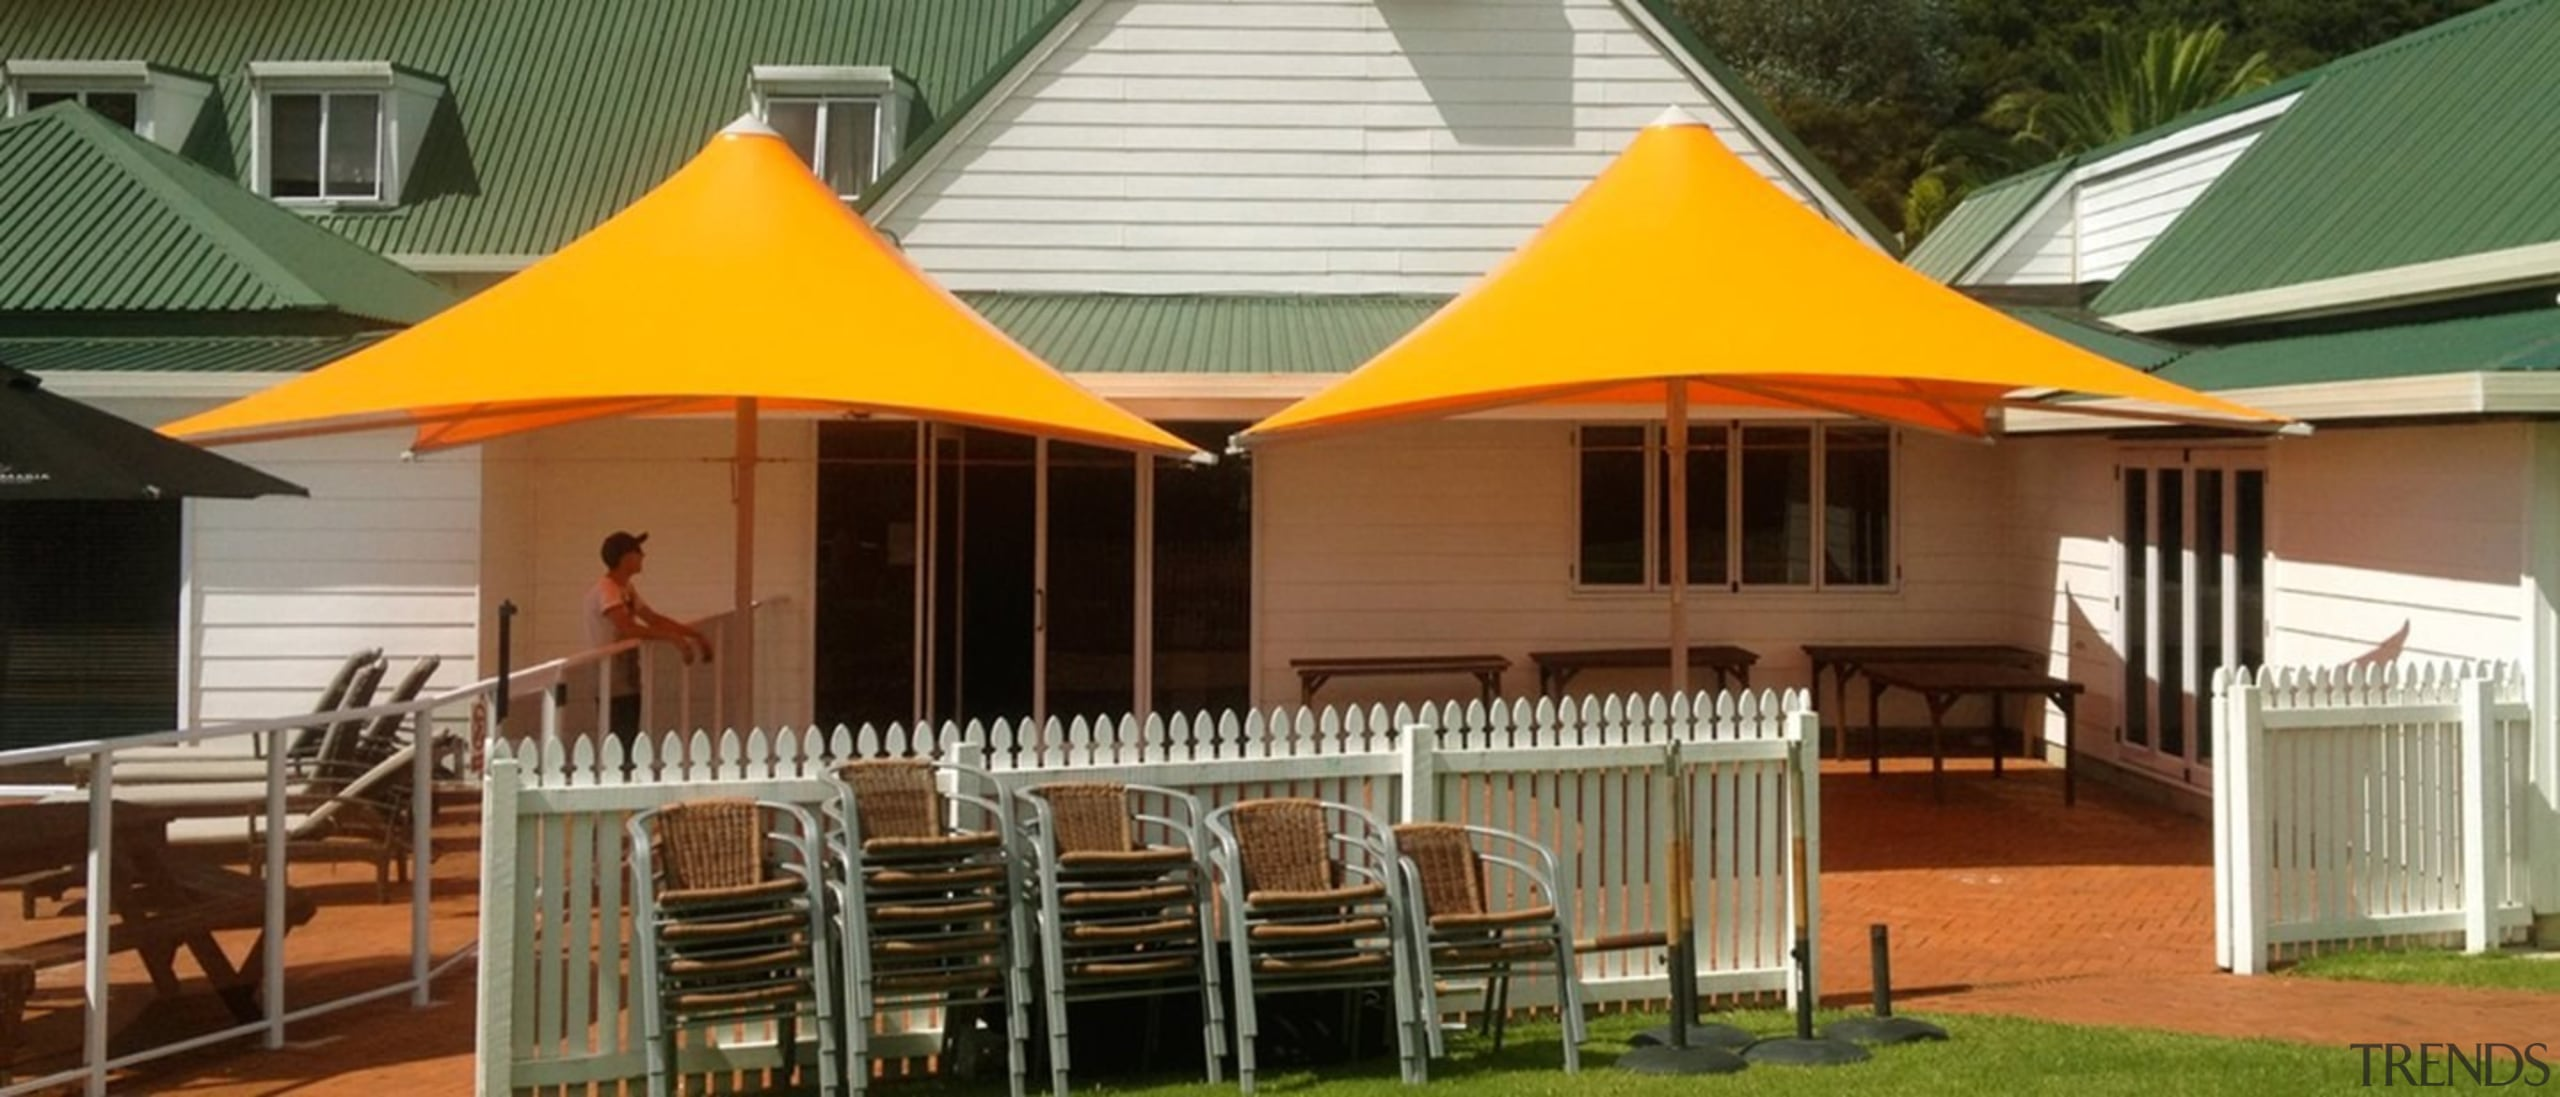 Summit Parasols - awning | canopy | gazebo awning, canopy, gazebo, outdoor structure, property, real estate, shade, tent, brown